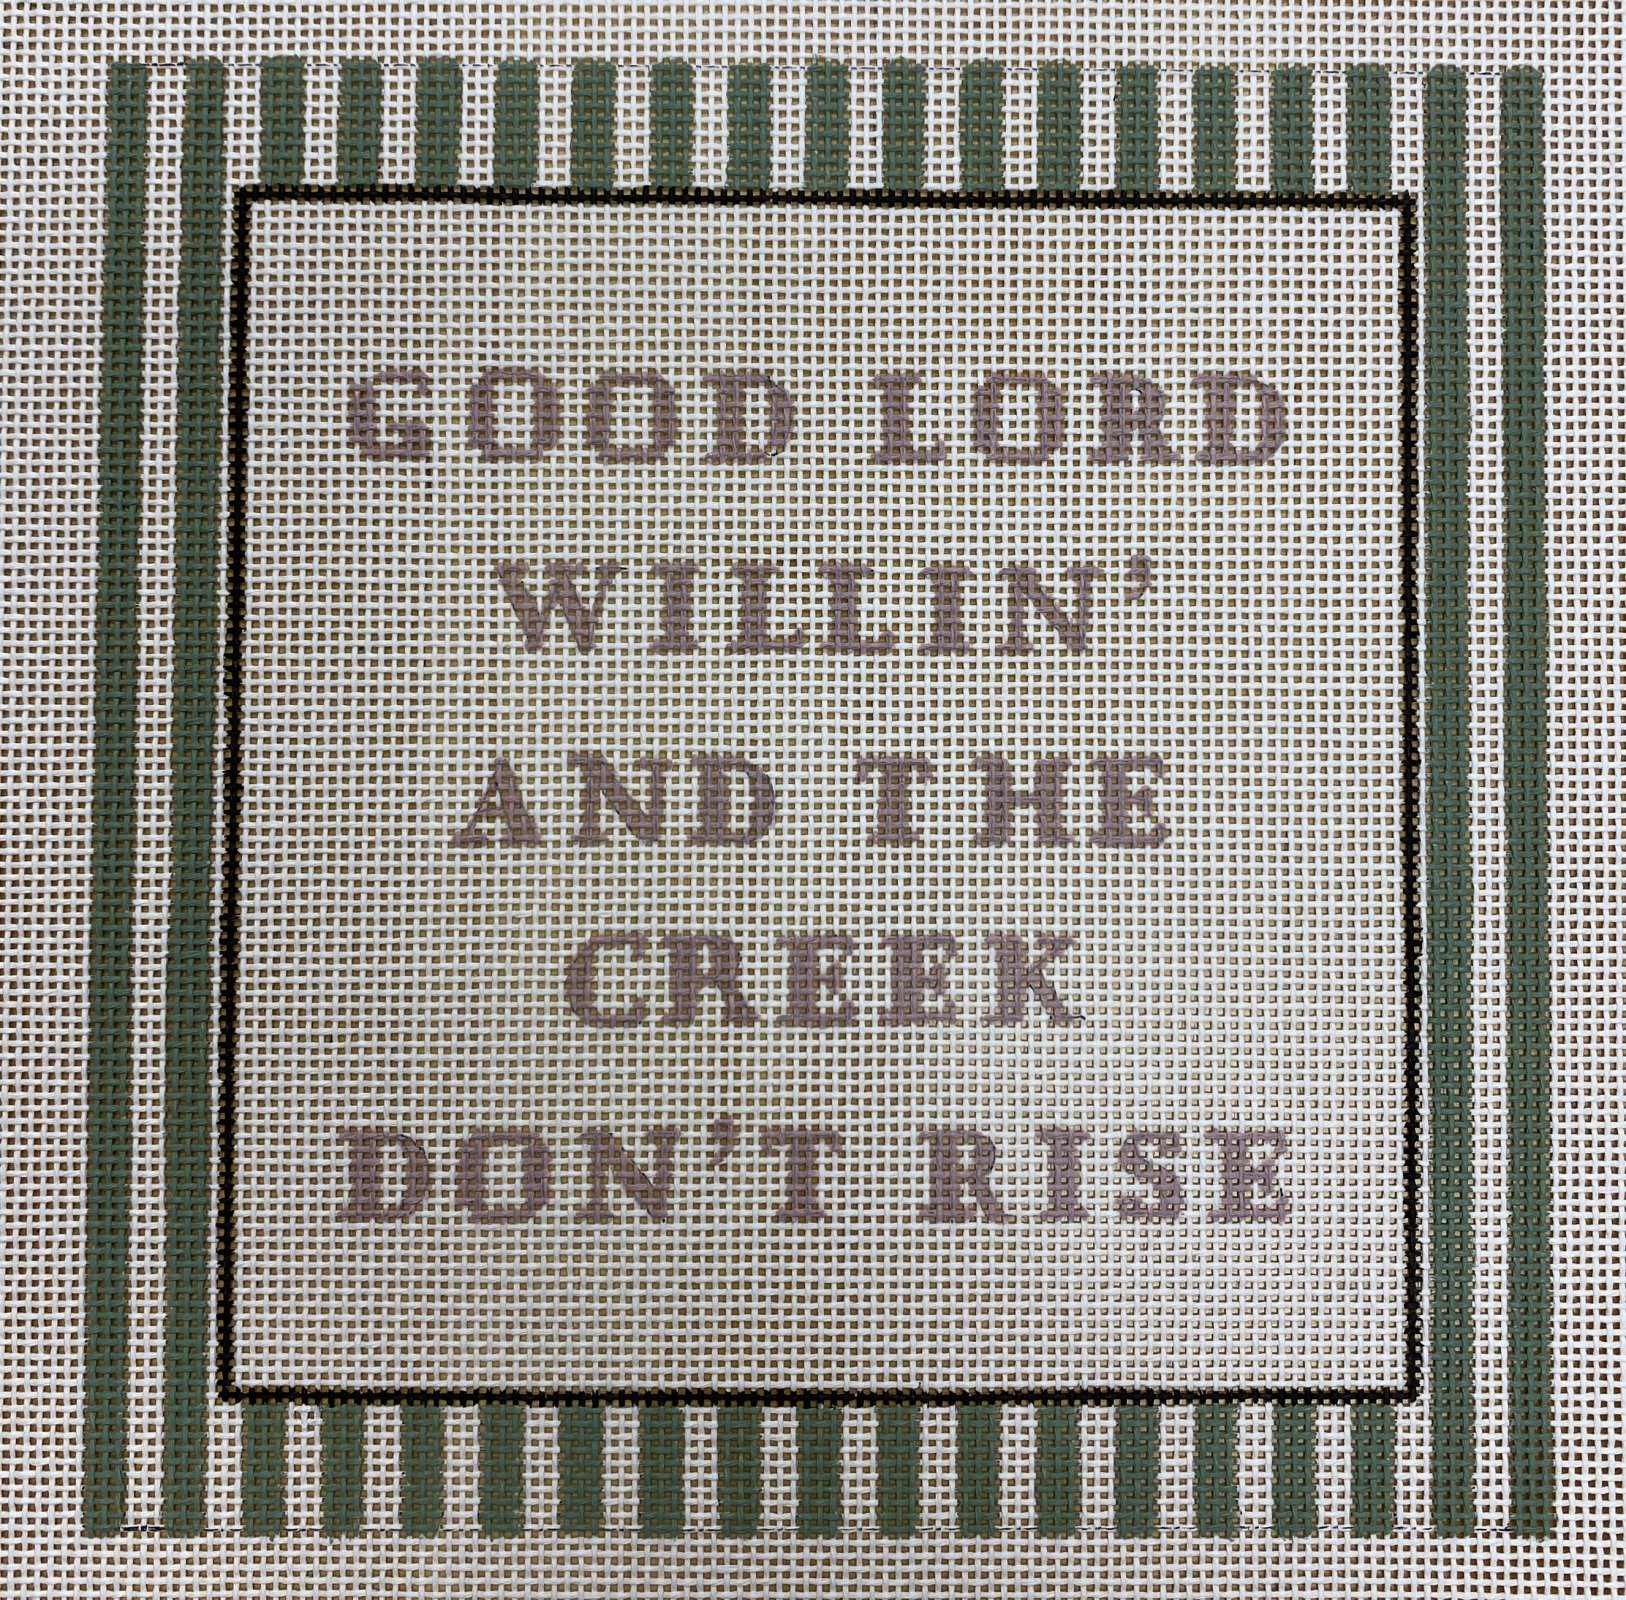 good lord willin' and the creek don't rise